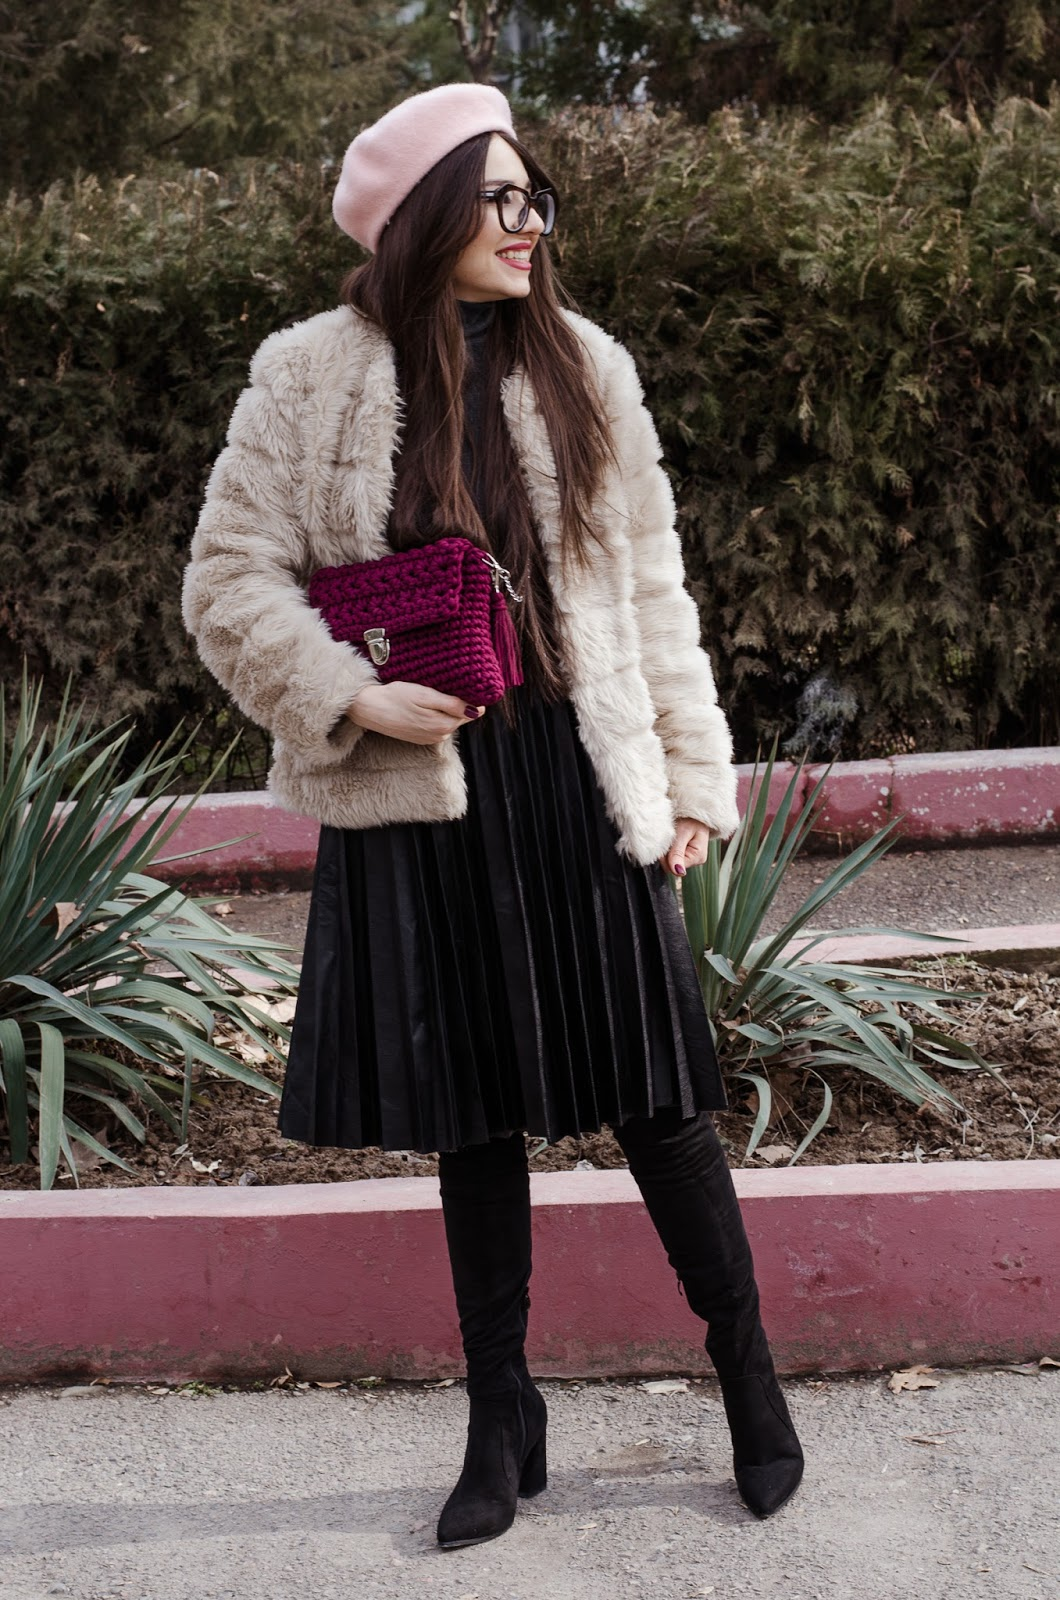 fashion blogger diyorasnotes diyora beta pleated skirt shein beret far fur turtleneck outfit overtheknee boots